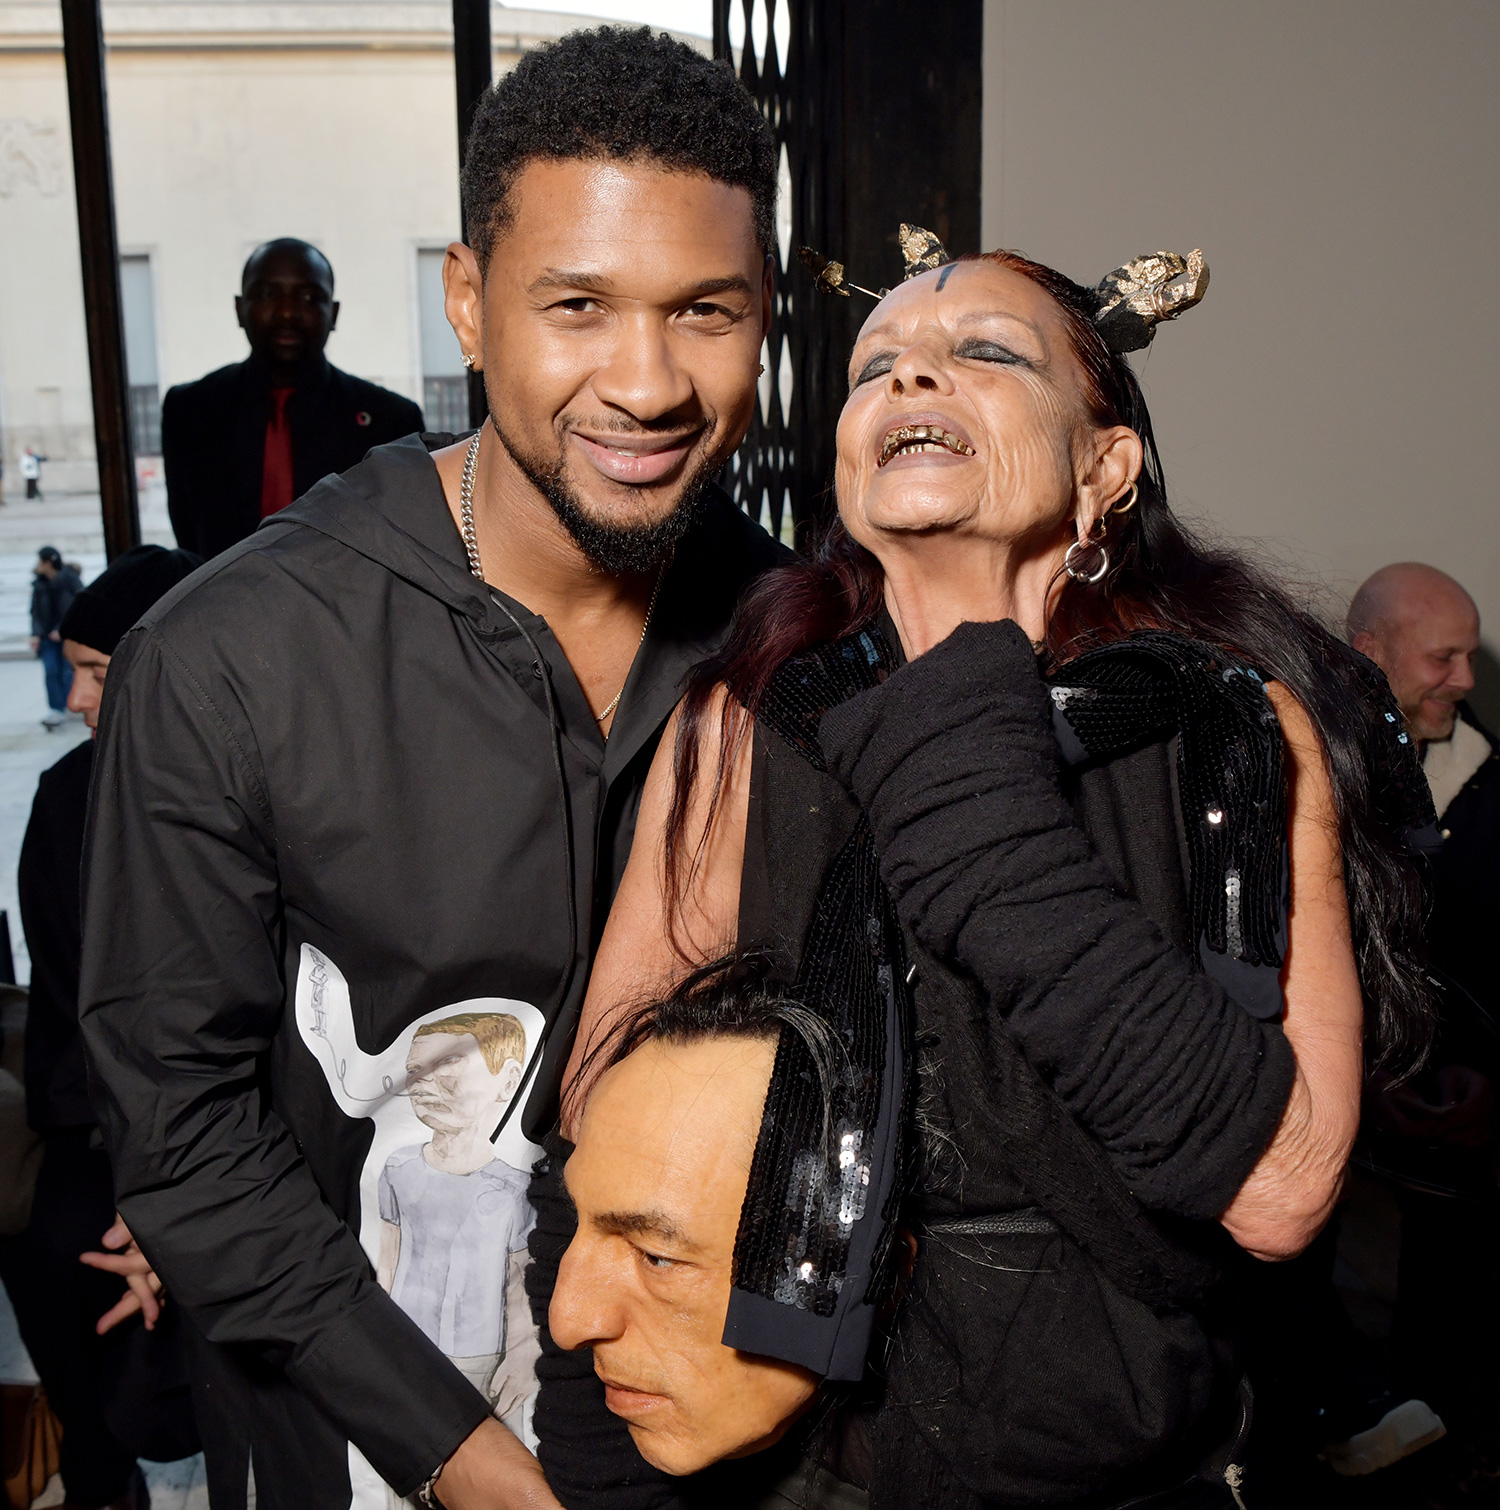 Usher and Michele Lamy in the front row Rick Owens show, Front Row, Fall Winter 2020, Paris Fashion Week, France - 27 Feb 2020